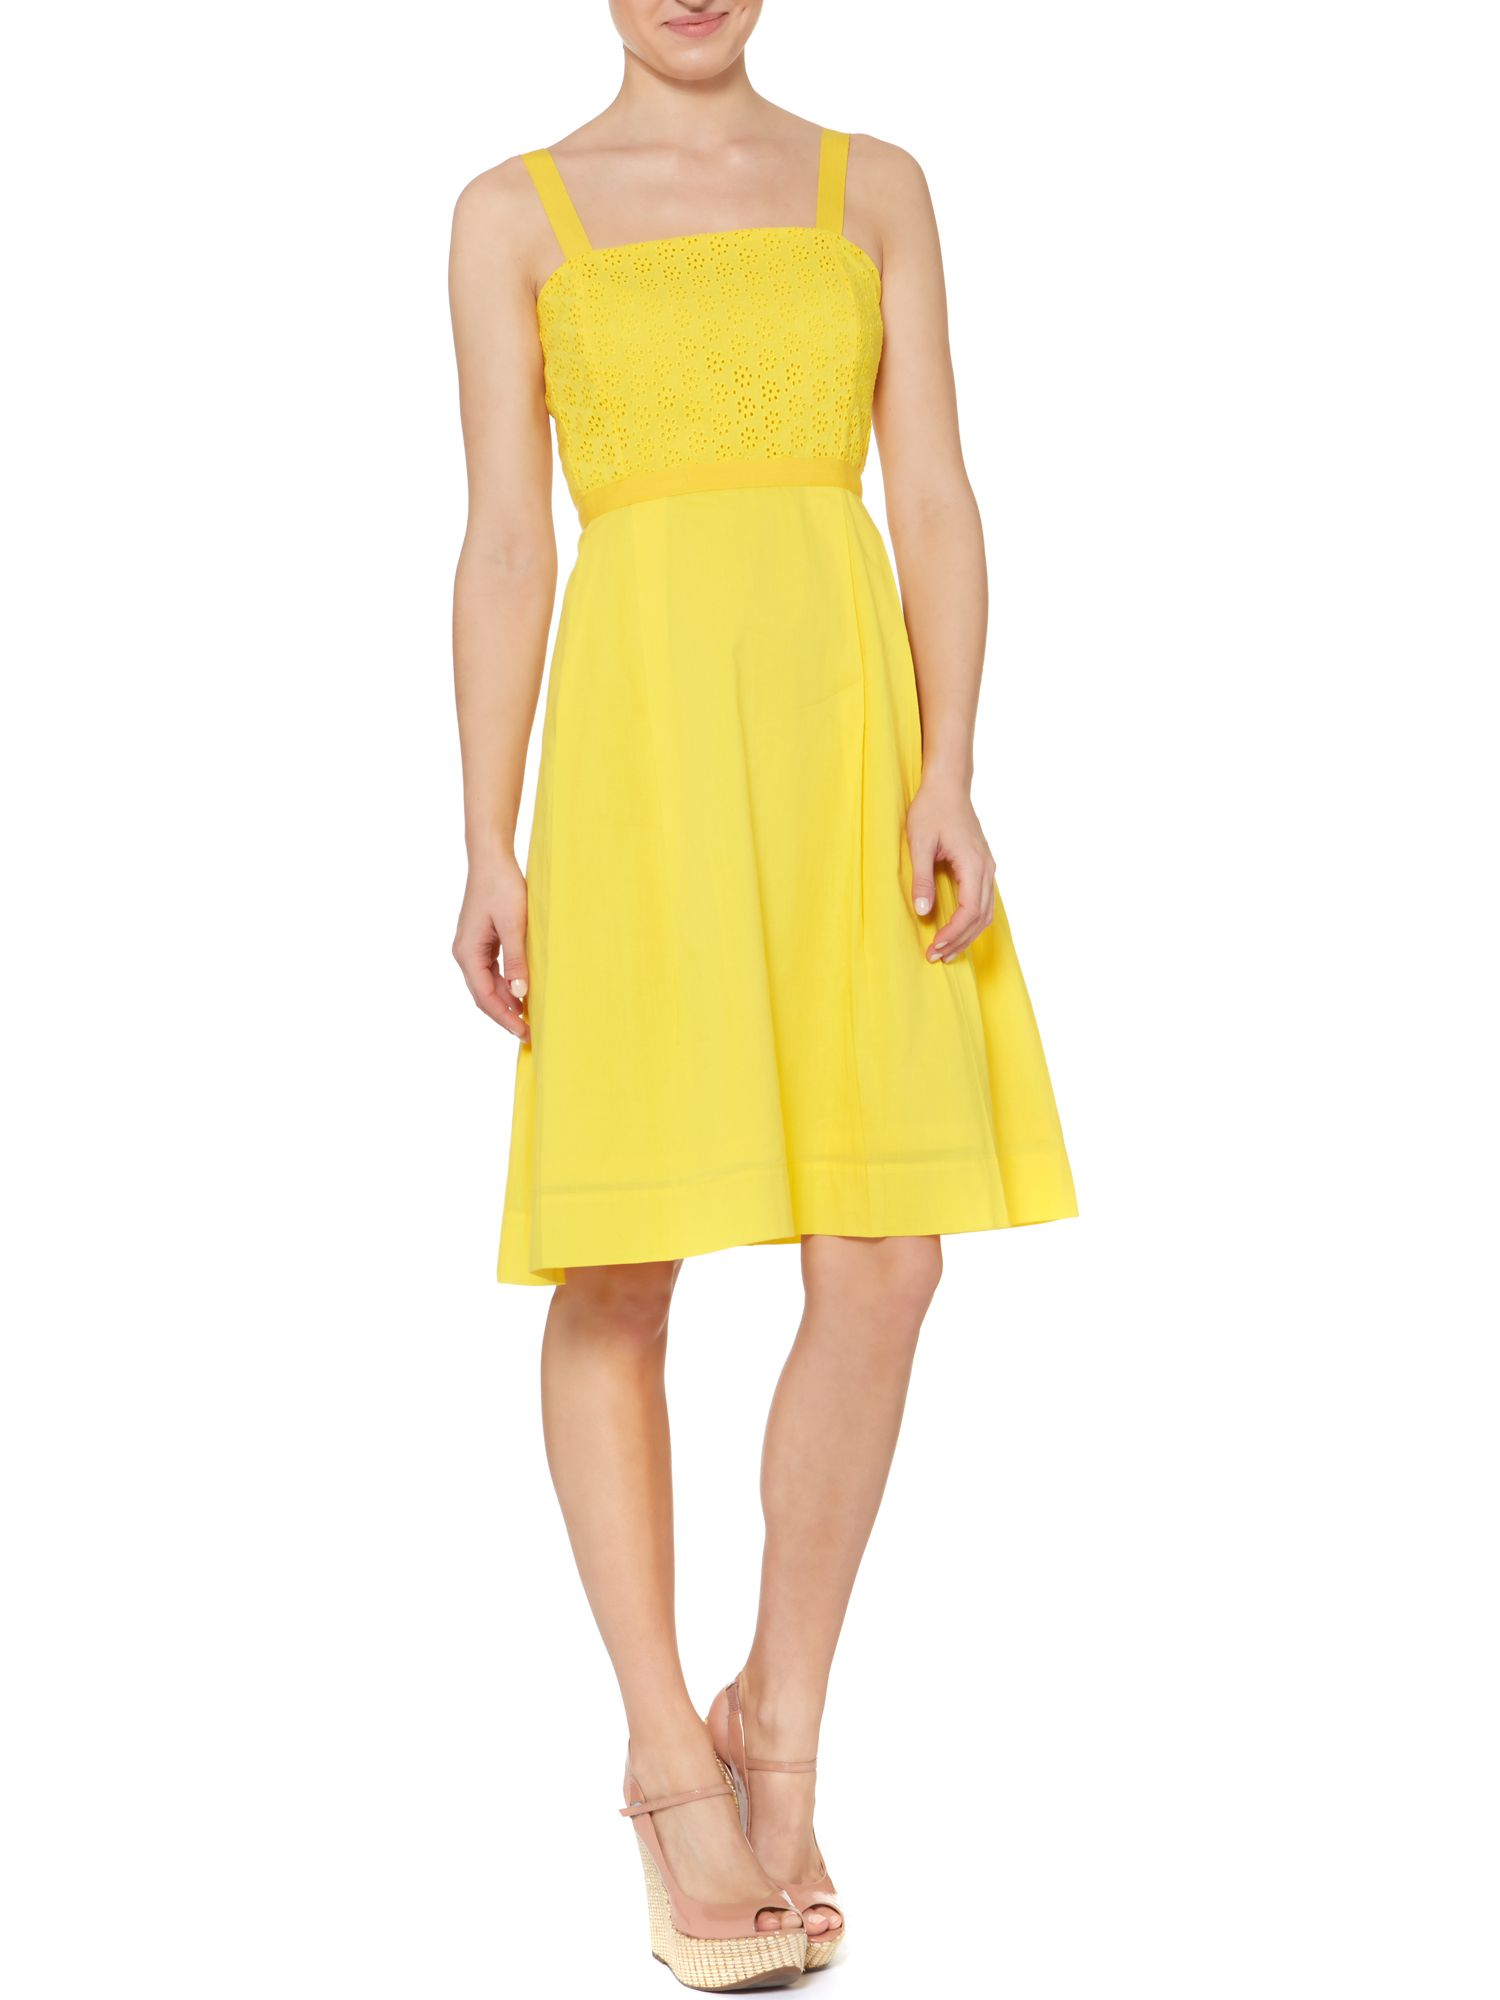 Nelly broderie dress